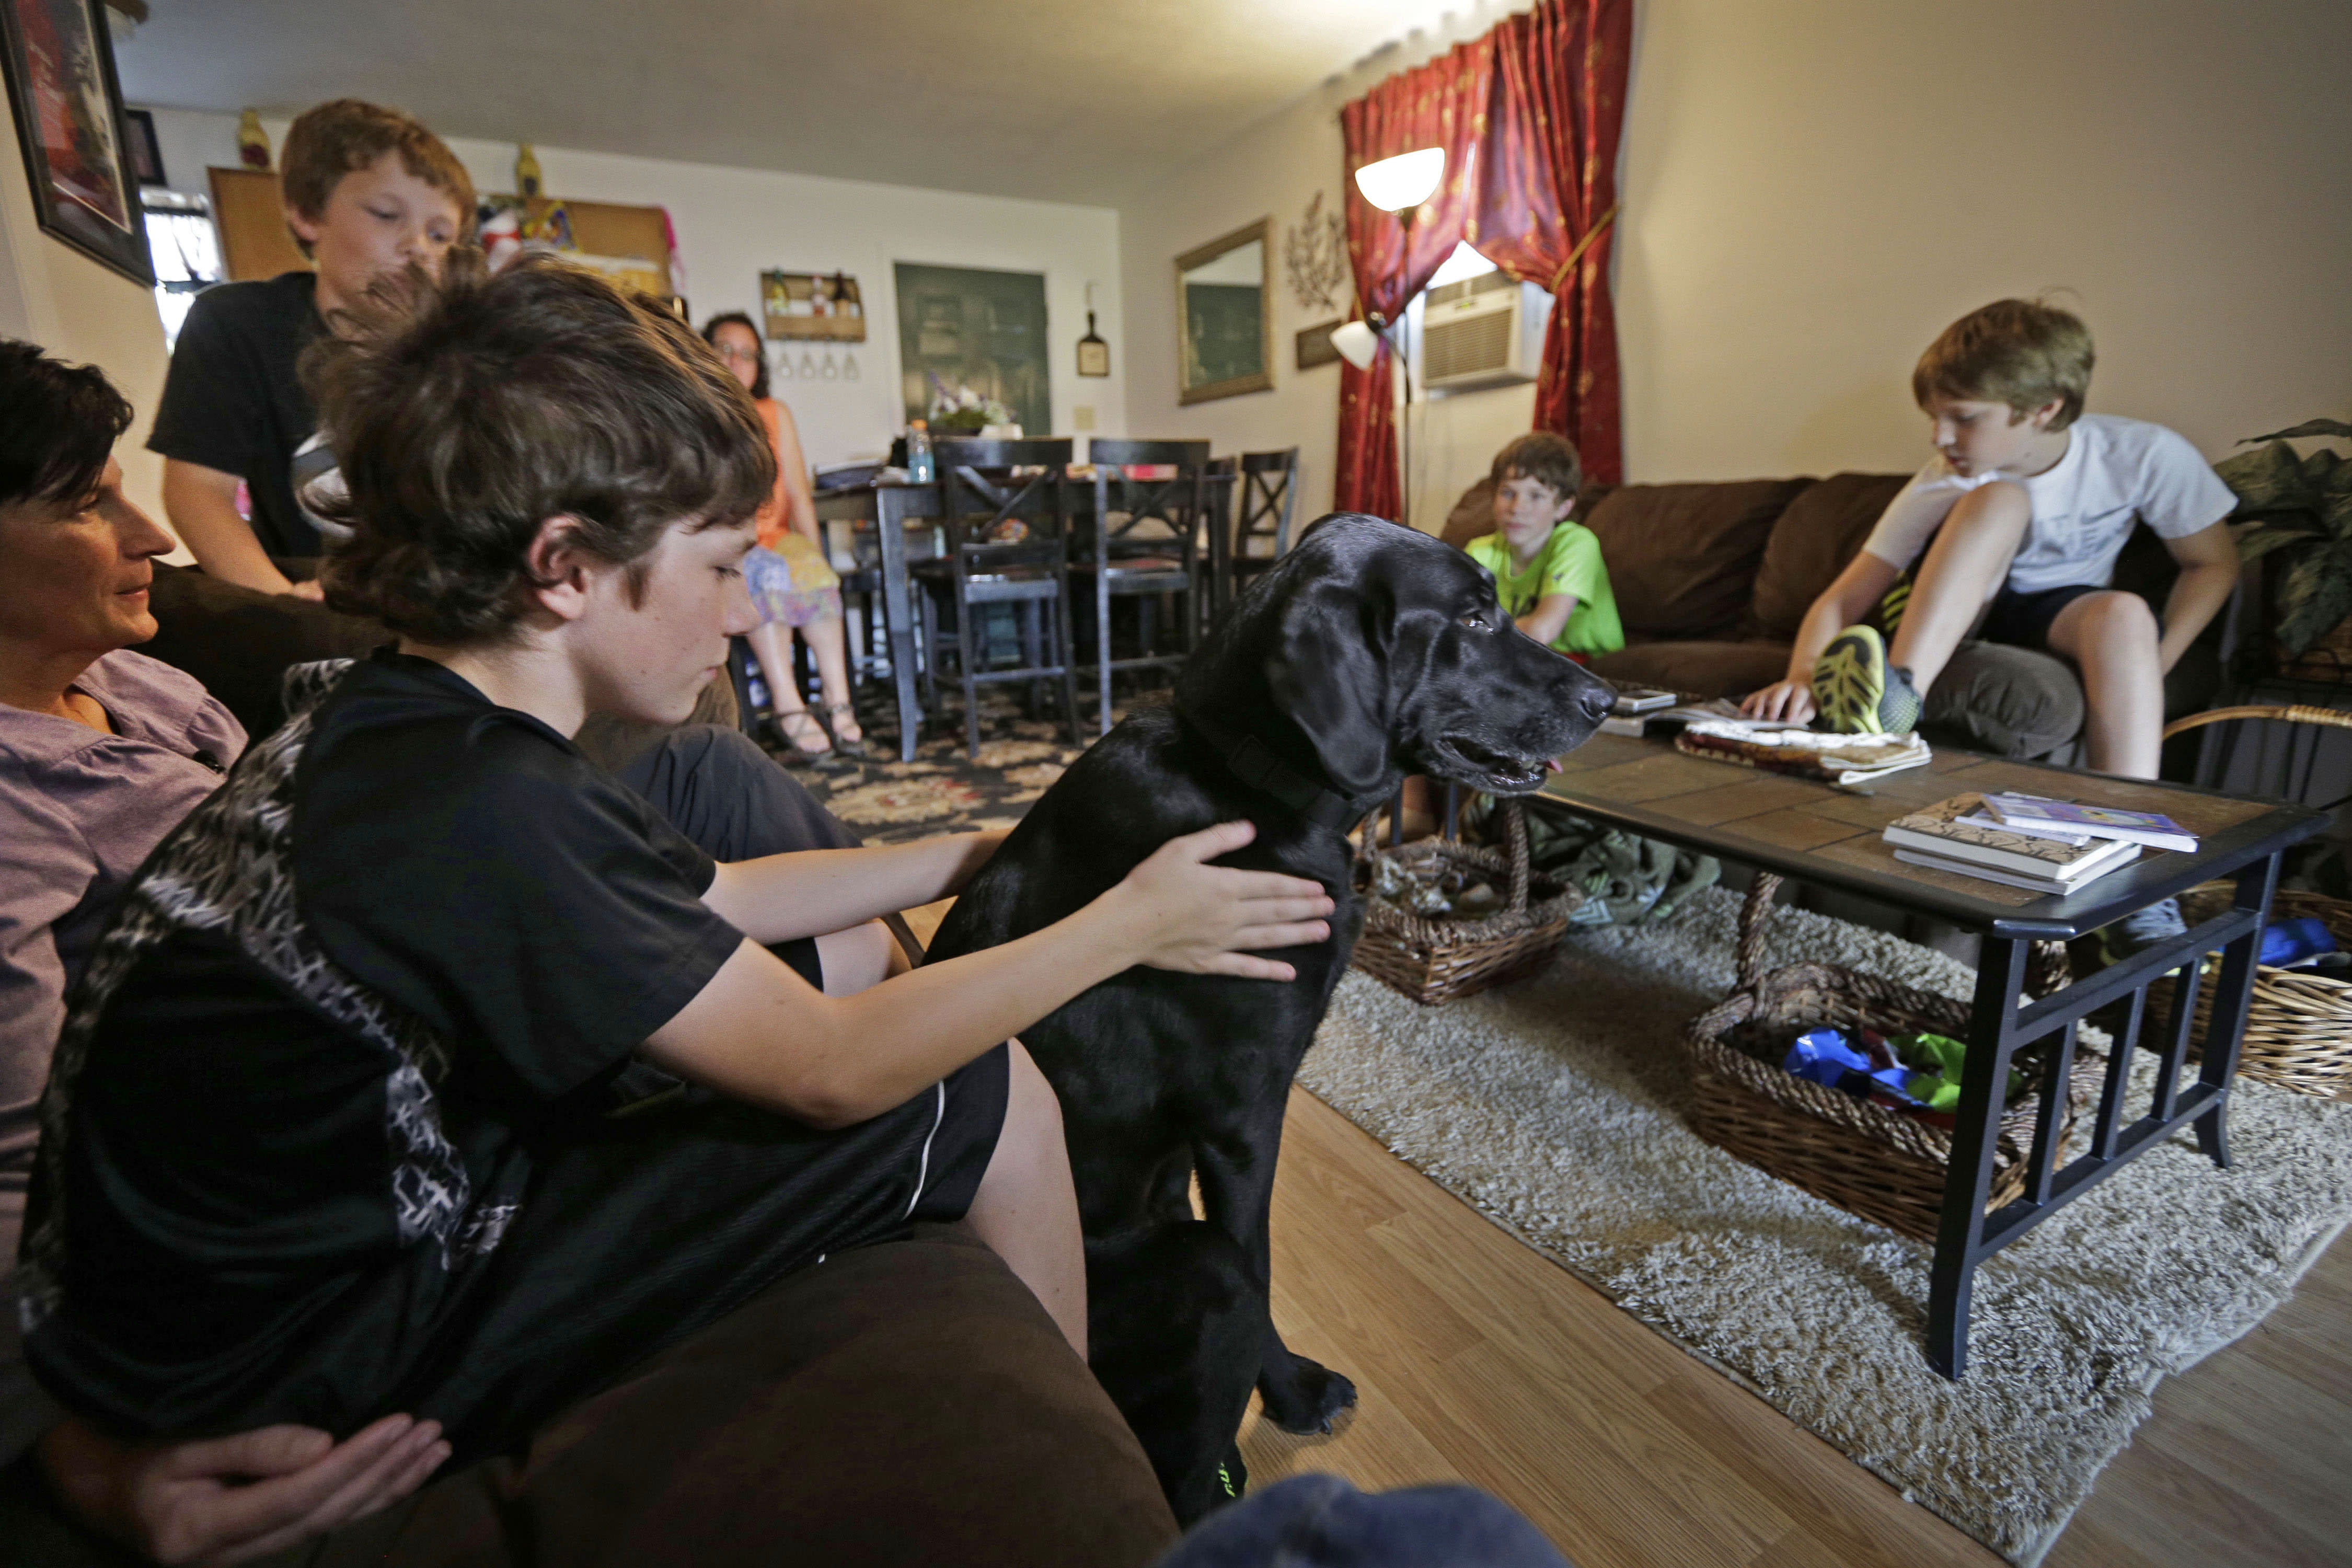 After vet felled by PTSD, service dog Honor aids family now